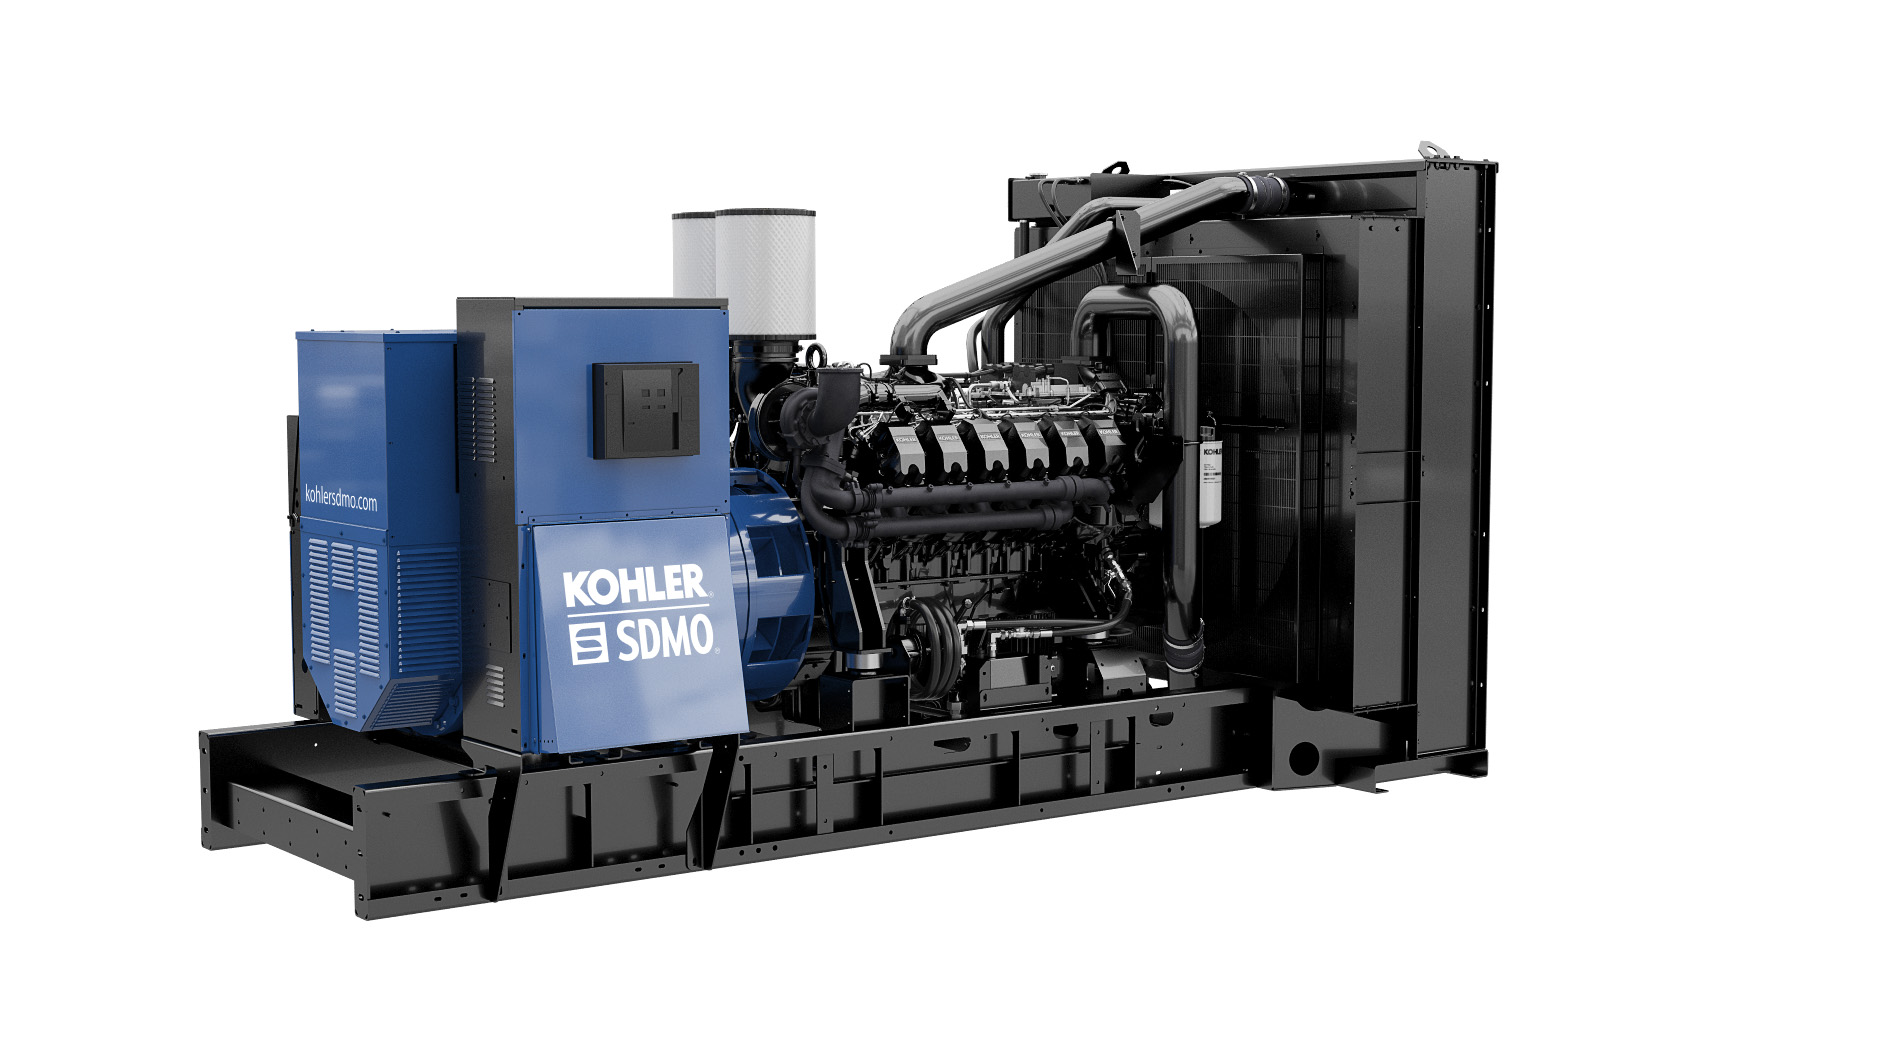 Kohler SDMO announce transformational engine range launch